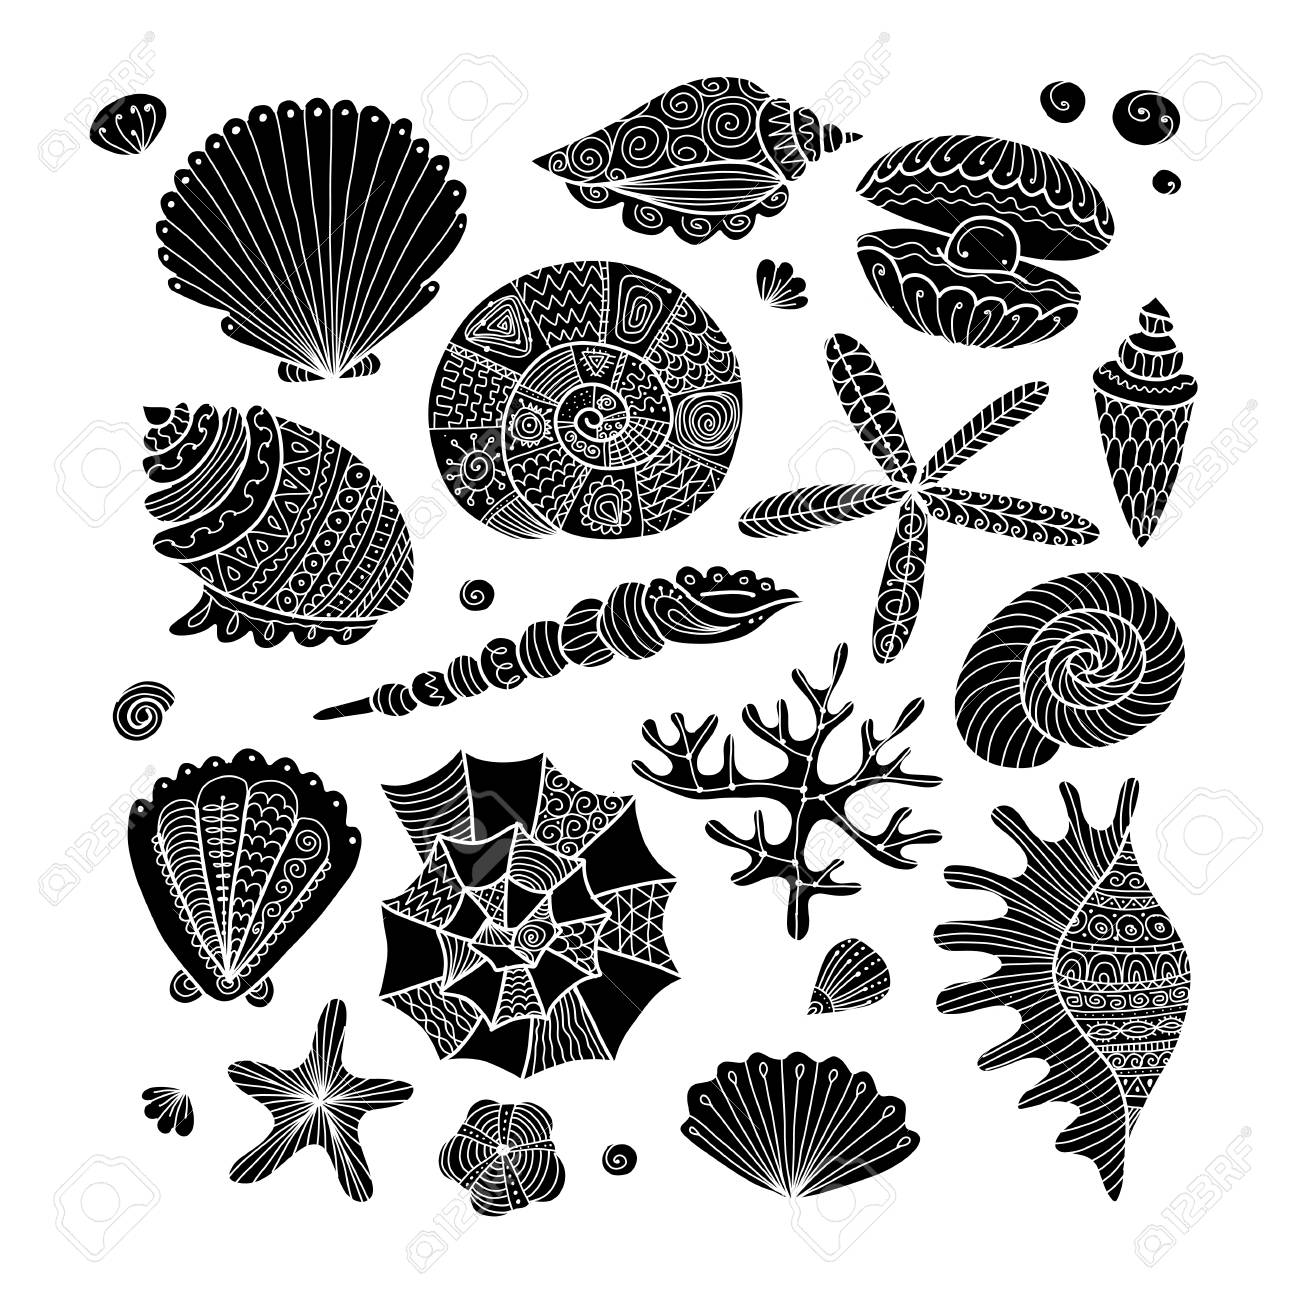 Marine collection, ornate seashells for your design - 99728526